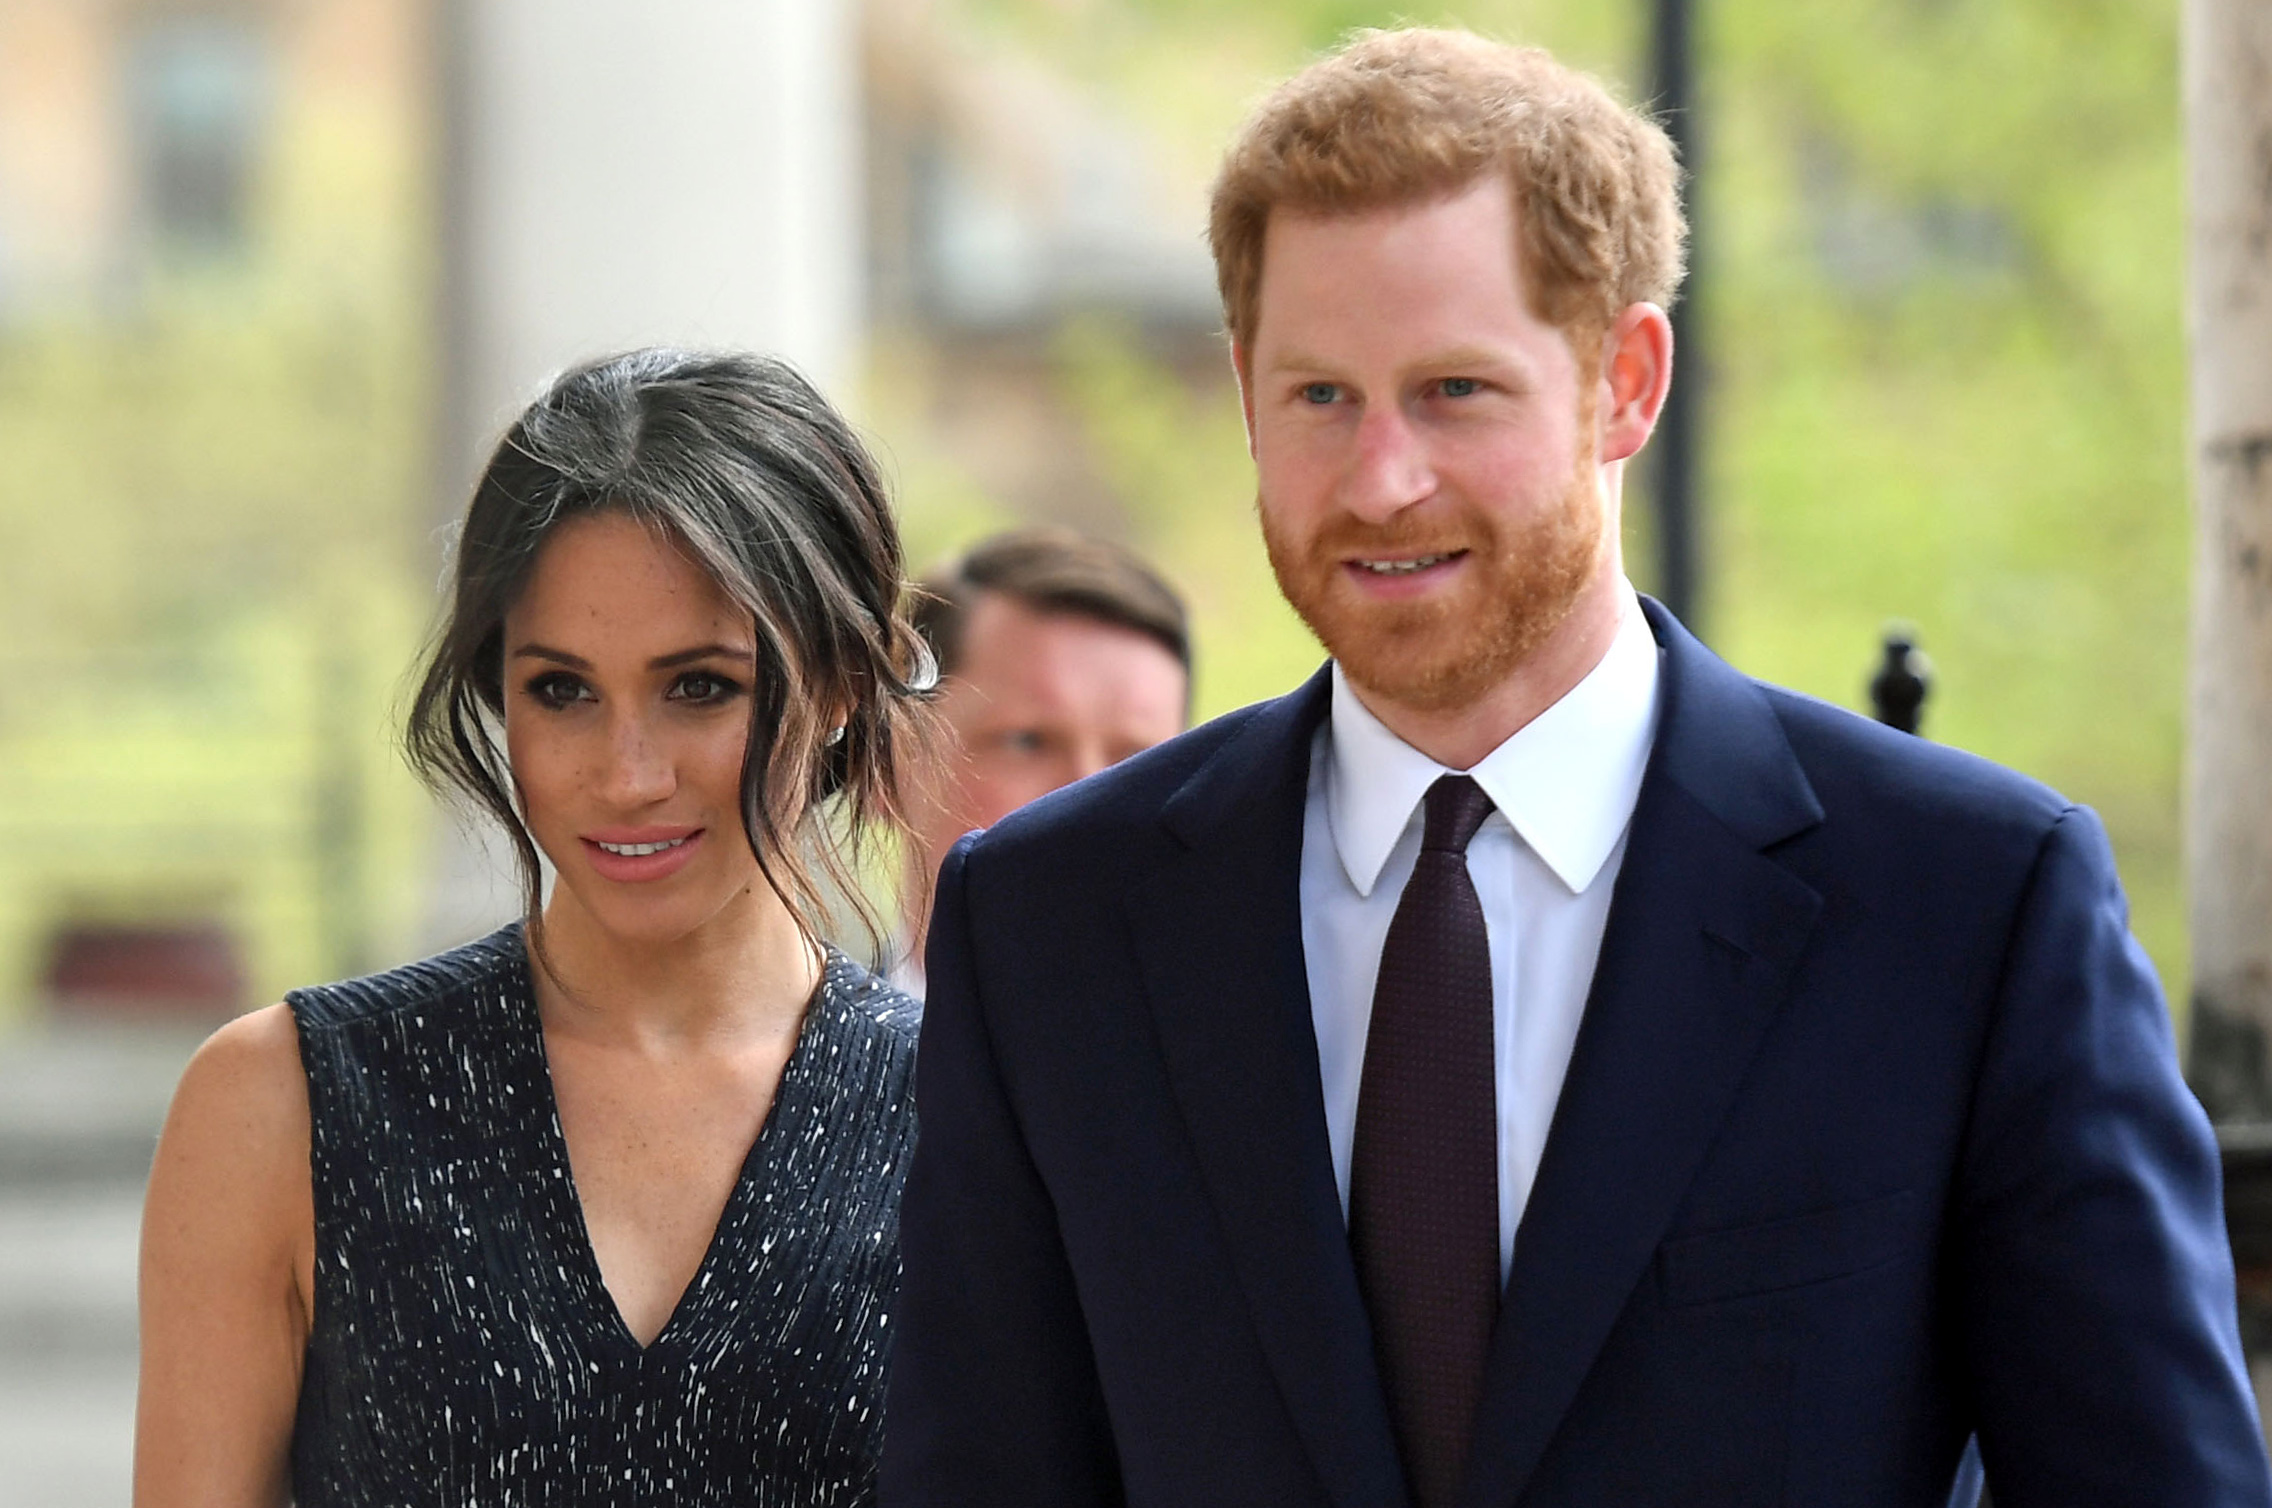 We won't be seeing Prince Harry and Meghan Markle for a while as of today